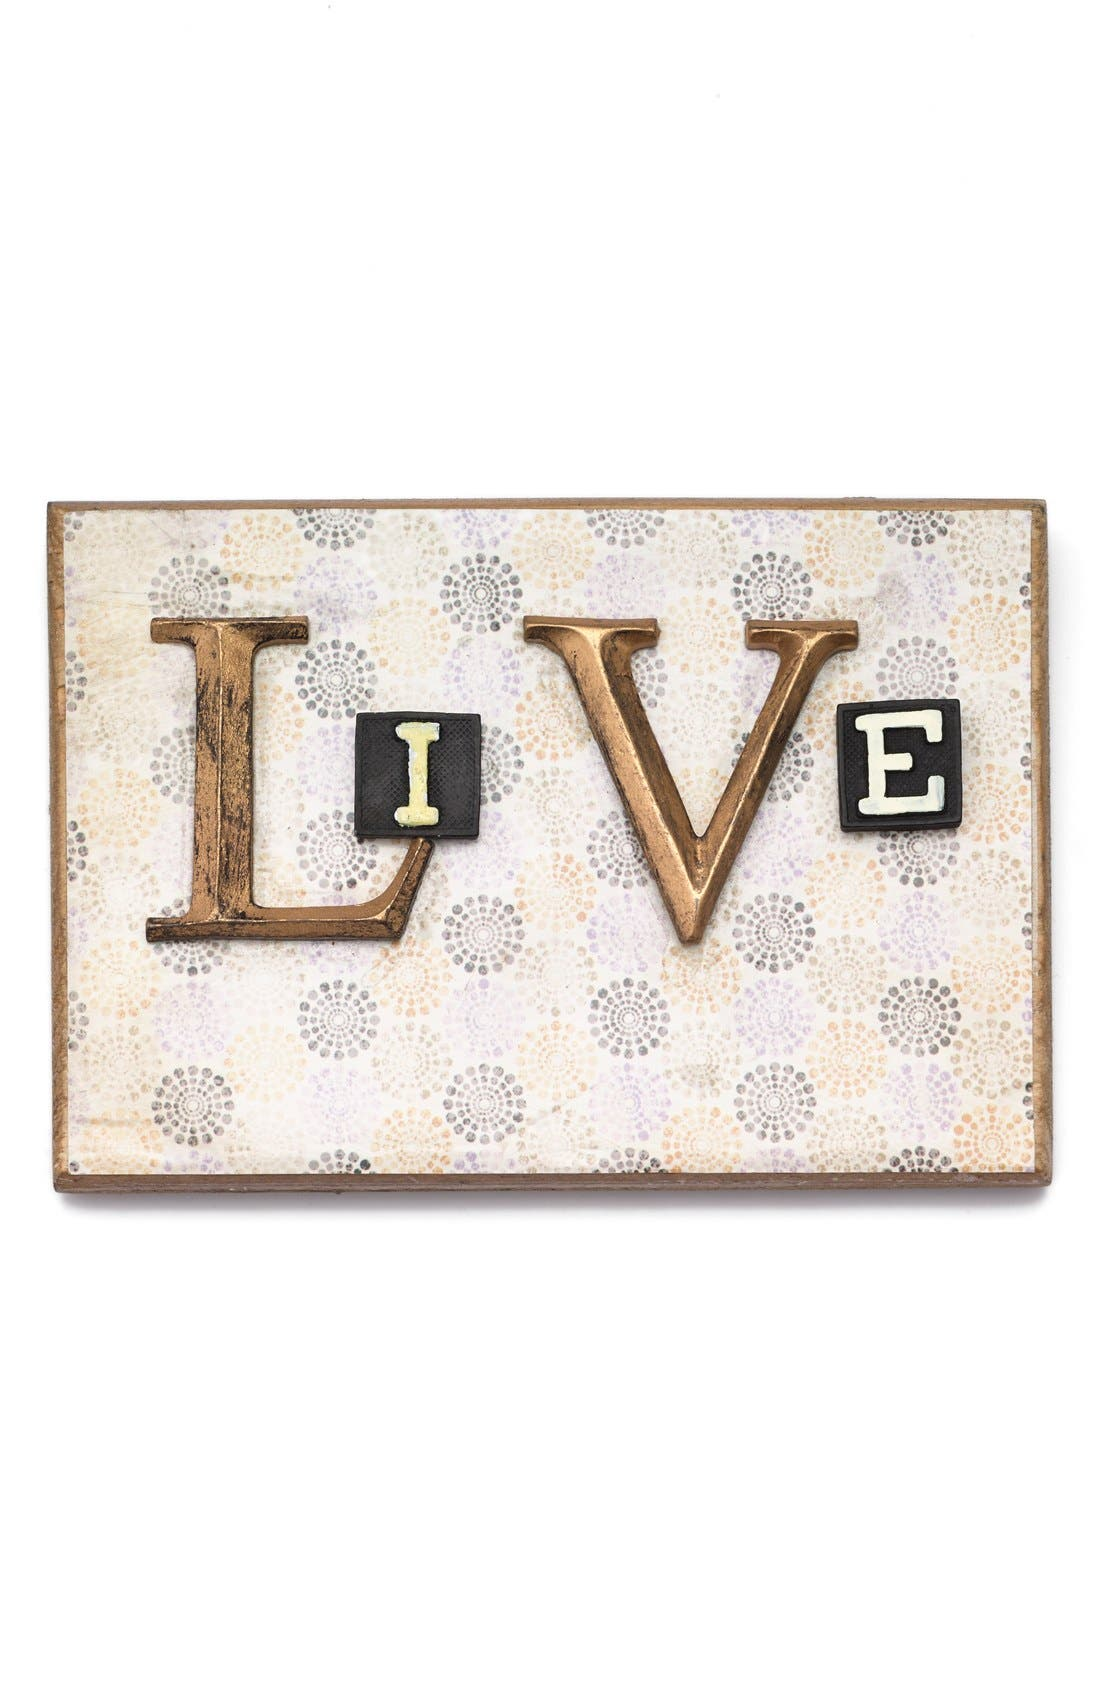 Main Image - Creative Co-Op 'Live' Embellished Wooden Wall Art